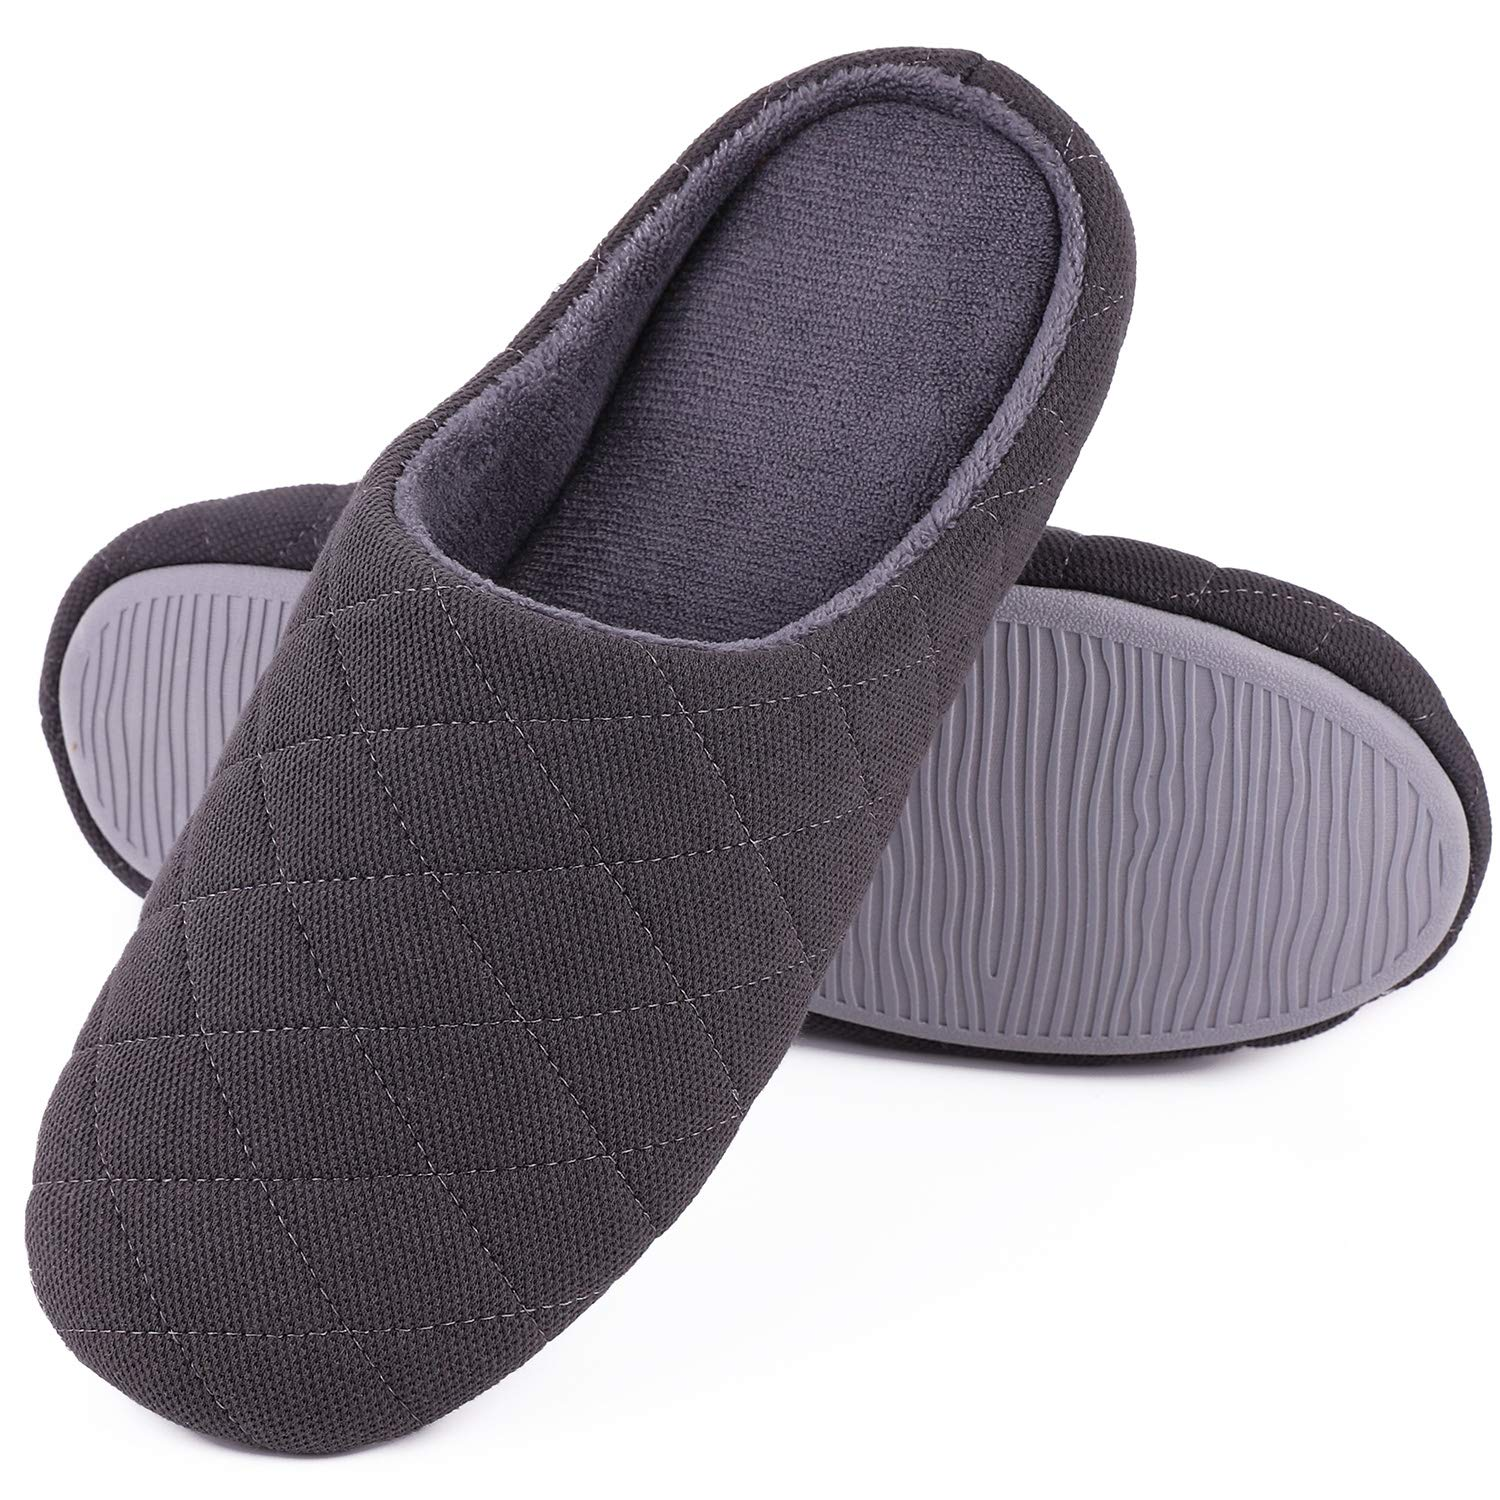 Men's Comfort Quilted Cotton Memory Foam House Slippers Slip On House Shoes (Large / 11-12 D(M) US, Dark Gray)